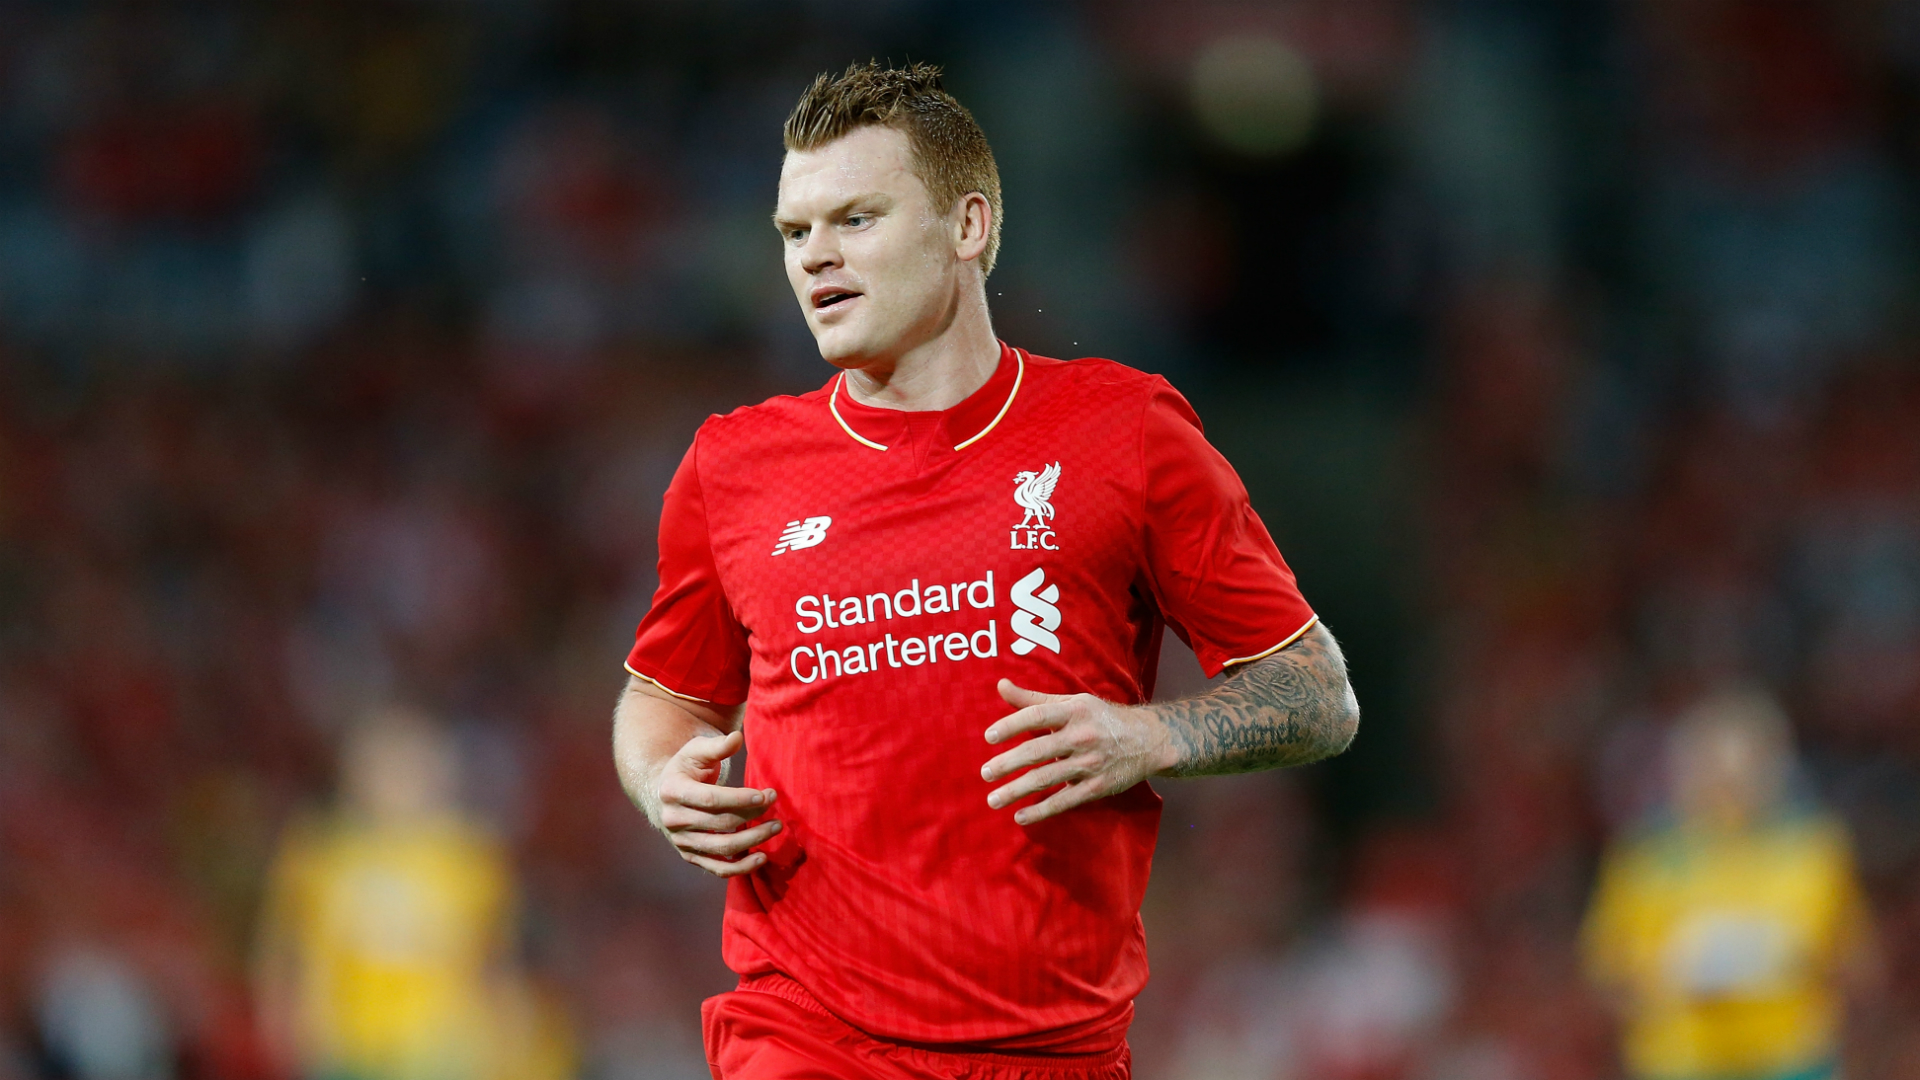 Former Liverpool player John Riise wishes to be back in ...